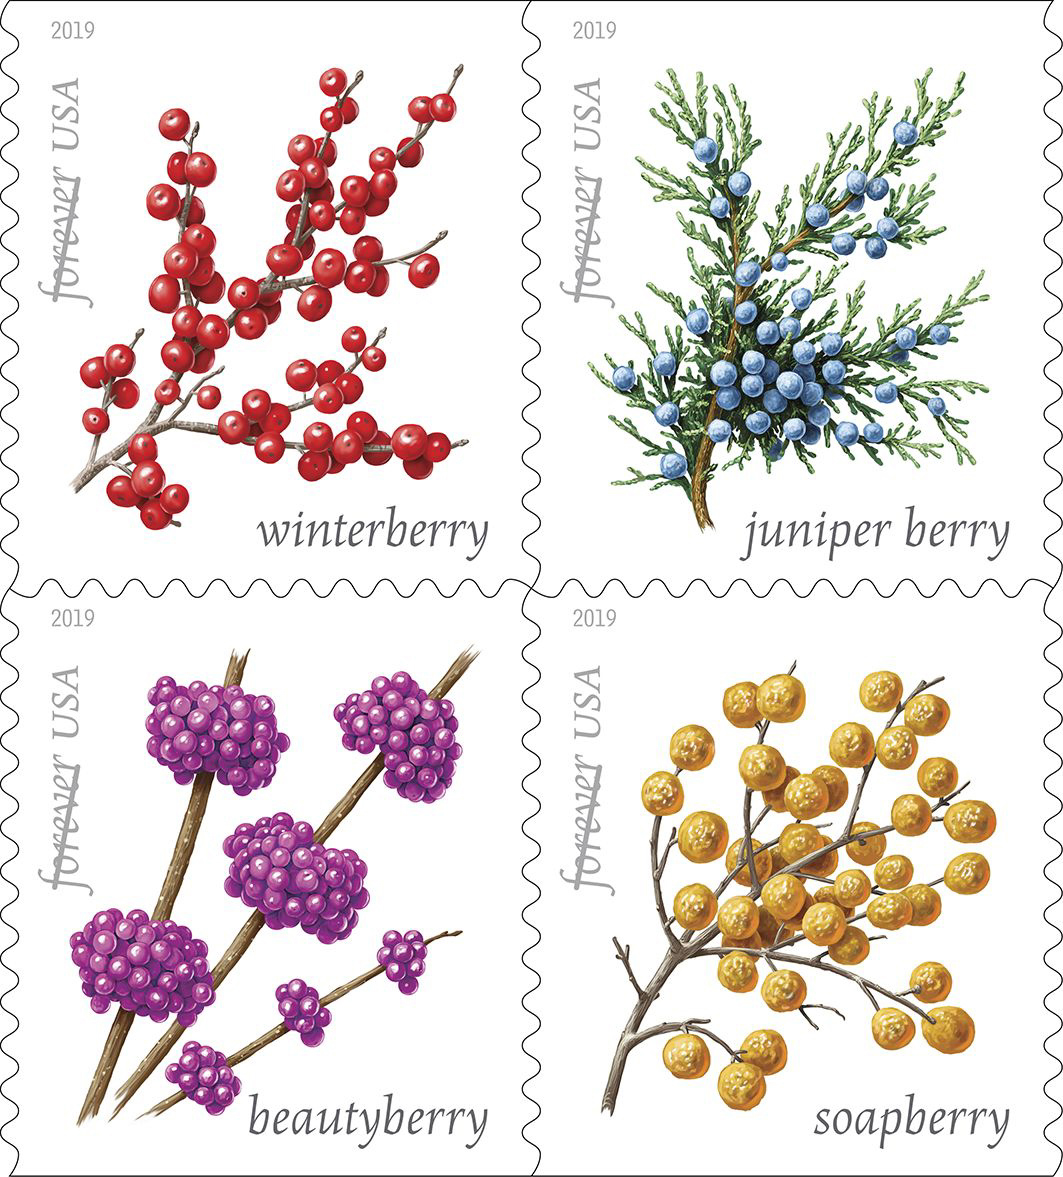 Winter Berries - TBD 2019